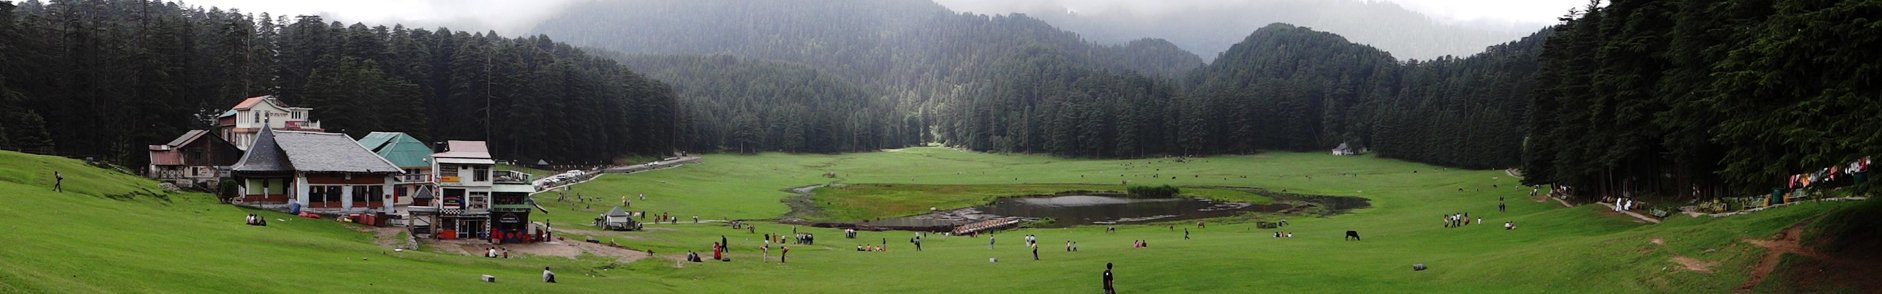 Himachal Pradesh Tourism Places